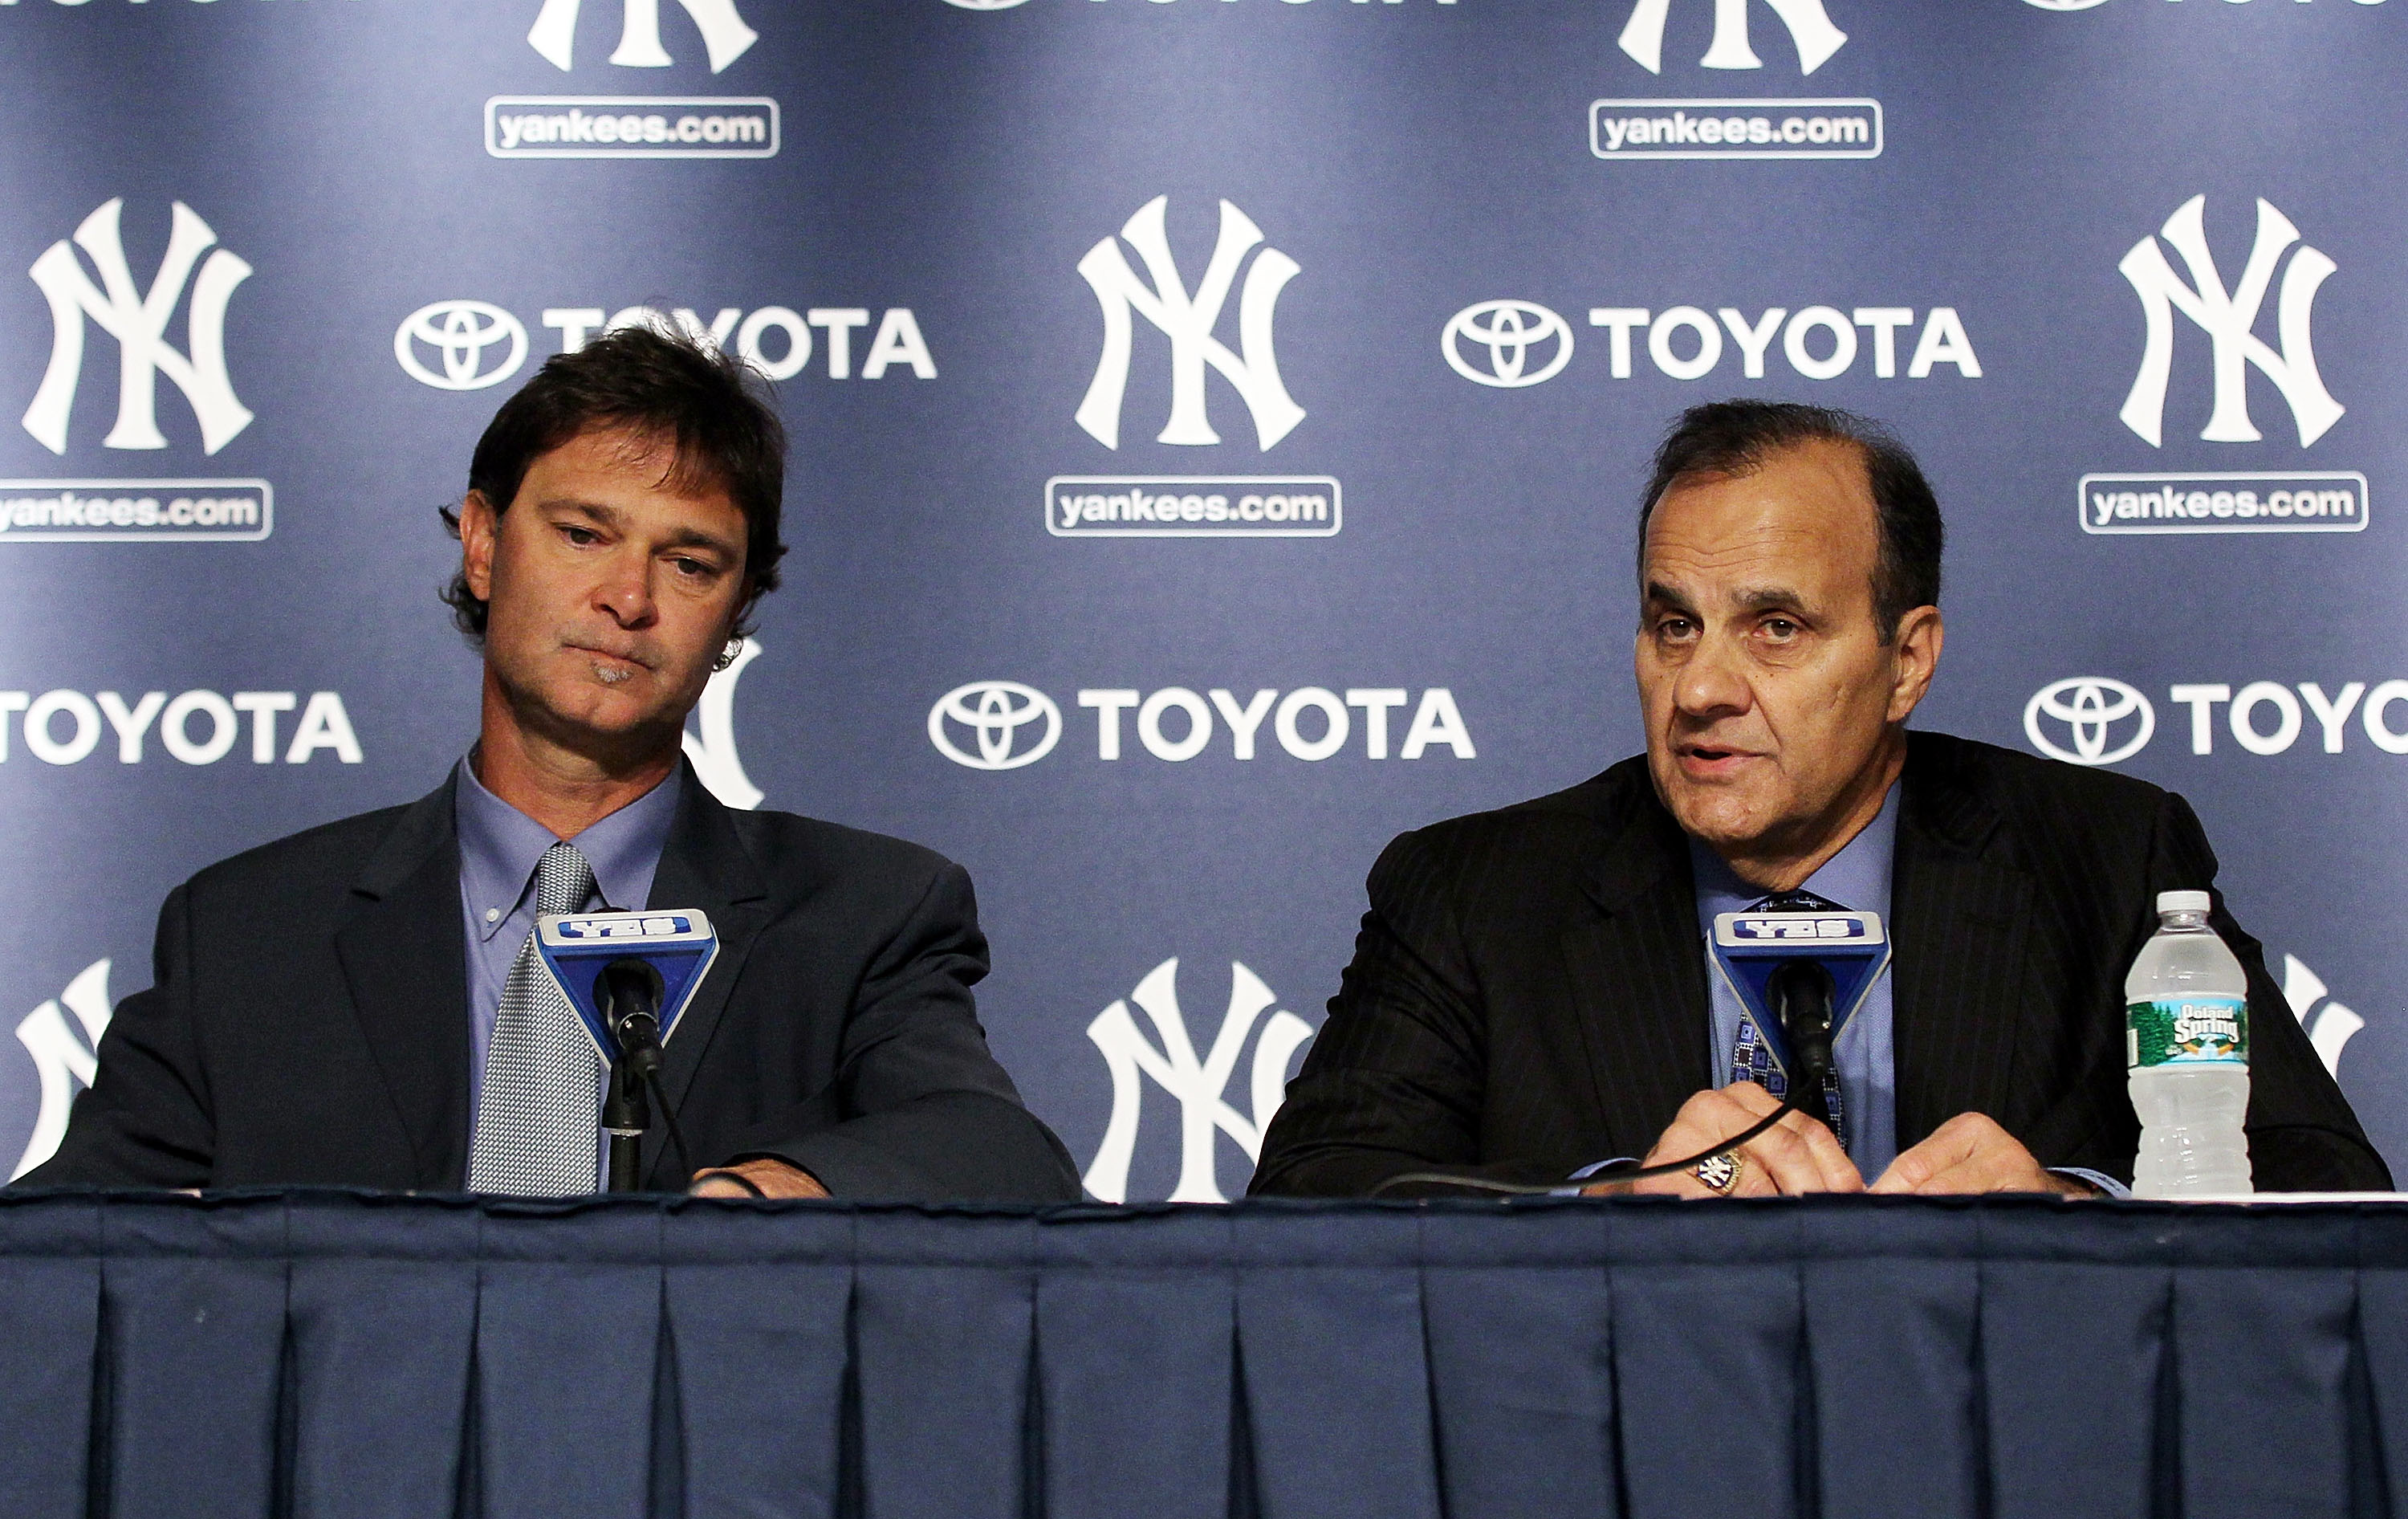 NEW YORK - SEPTEMBER 20:  Former New York Yankees manager Joe Torre (R) and former player Don Mattingly speak to the media prior to the game against the Tampa Bay Rays on September 20, 2010 at Yankee Stadium in the Bronx borough of New York City.  (Photo